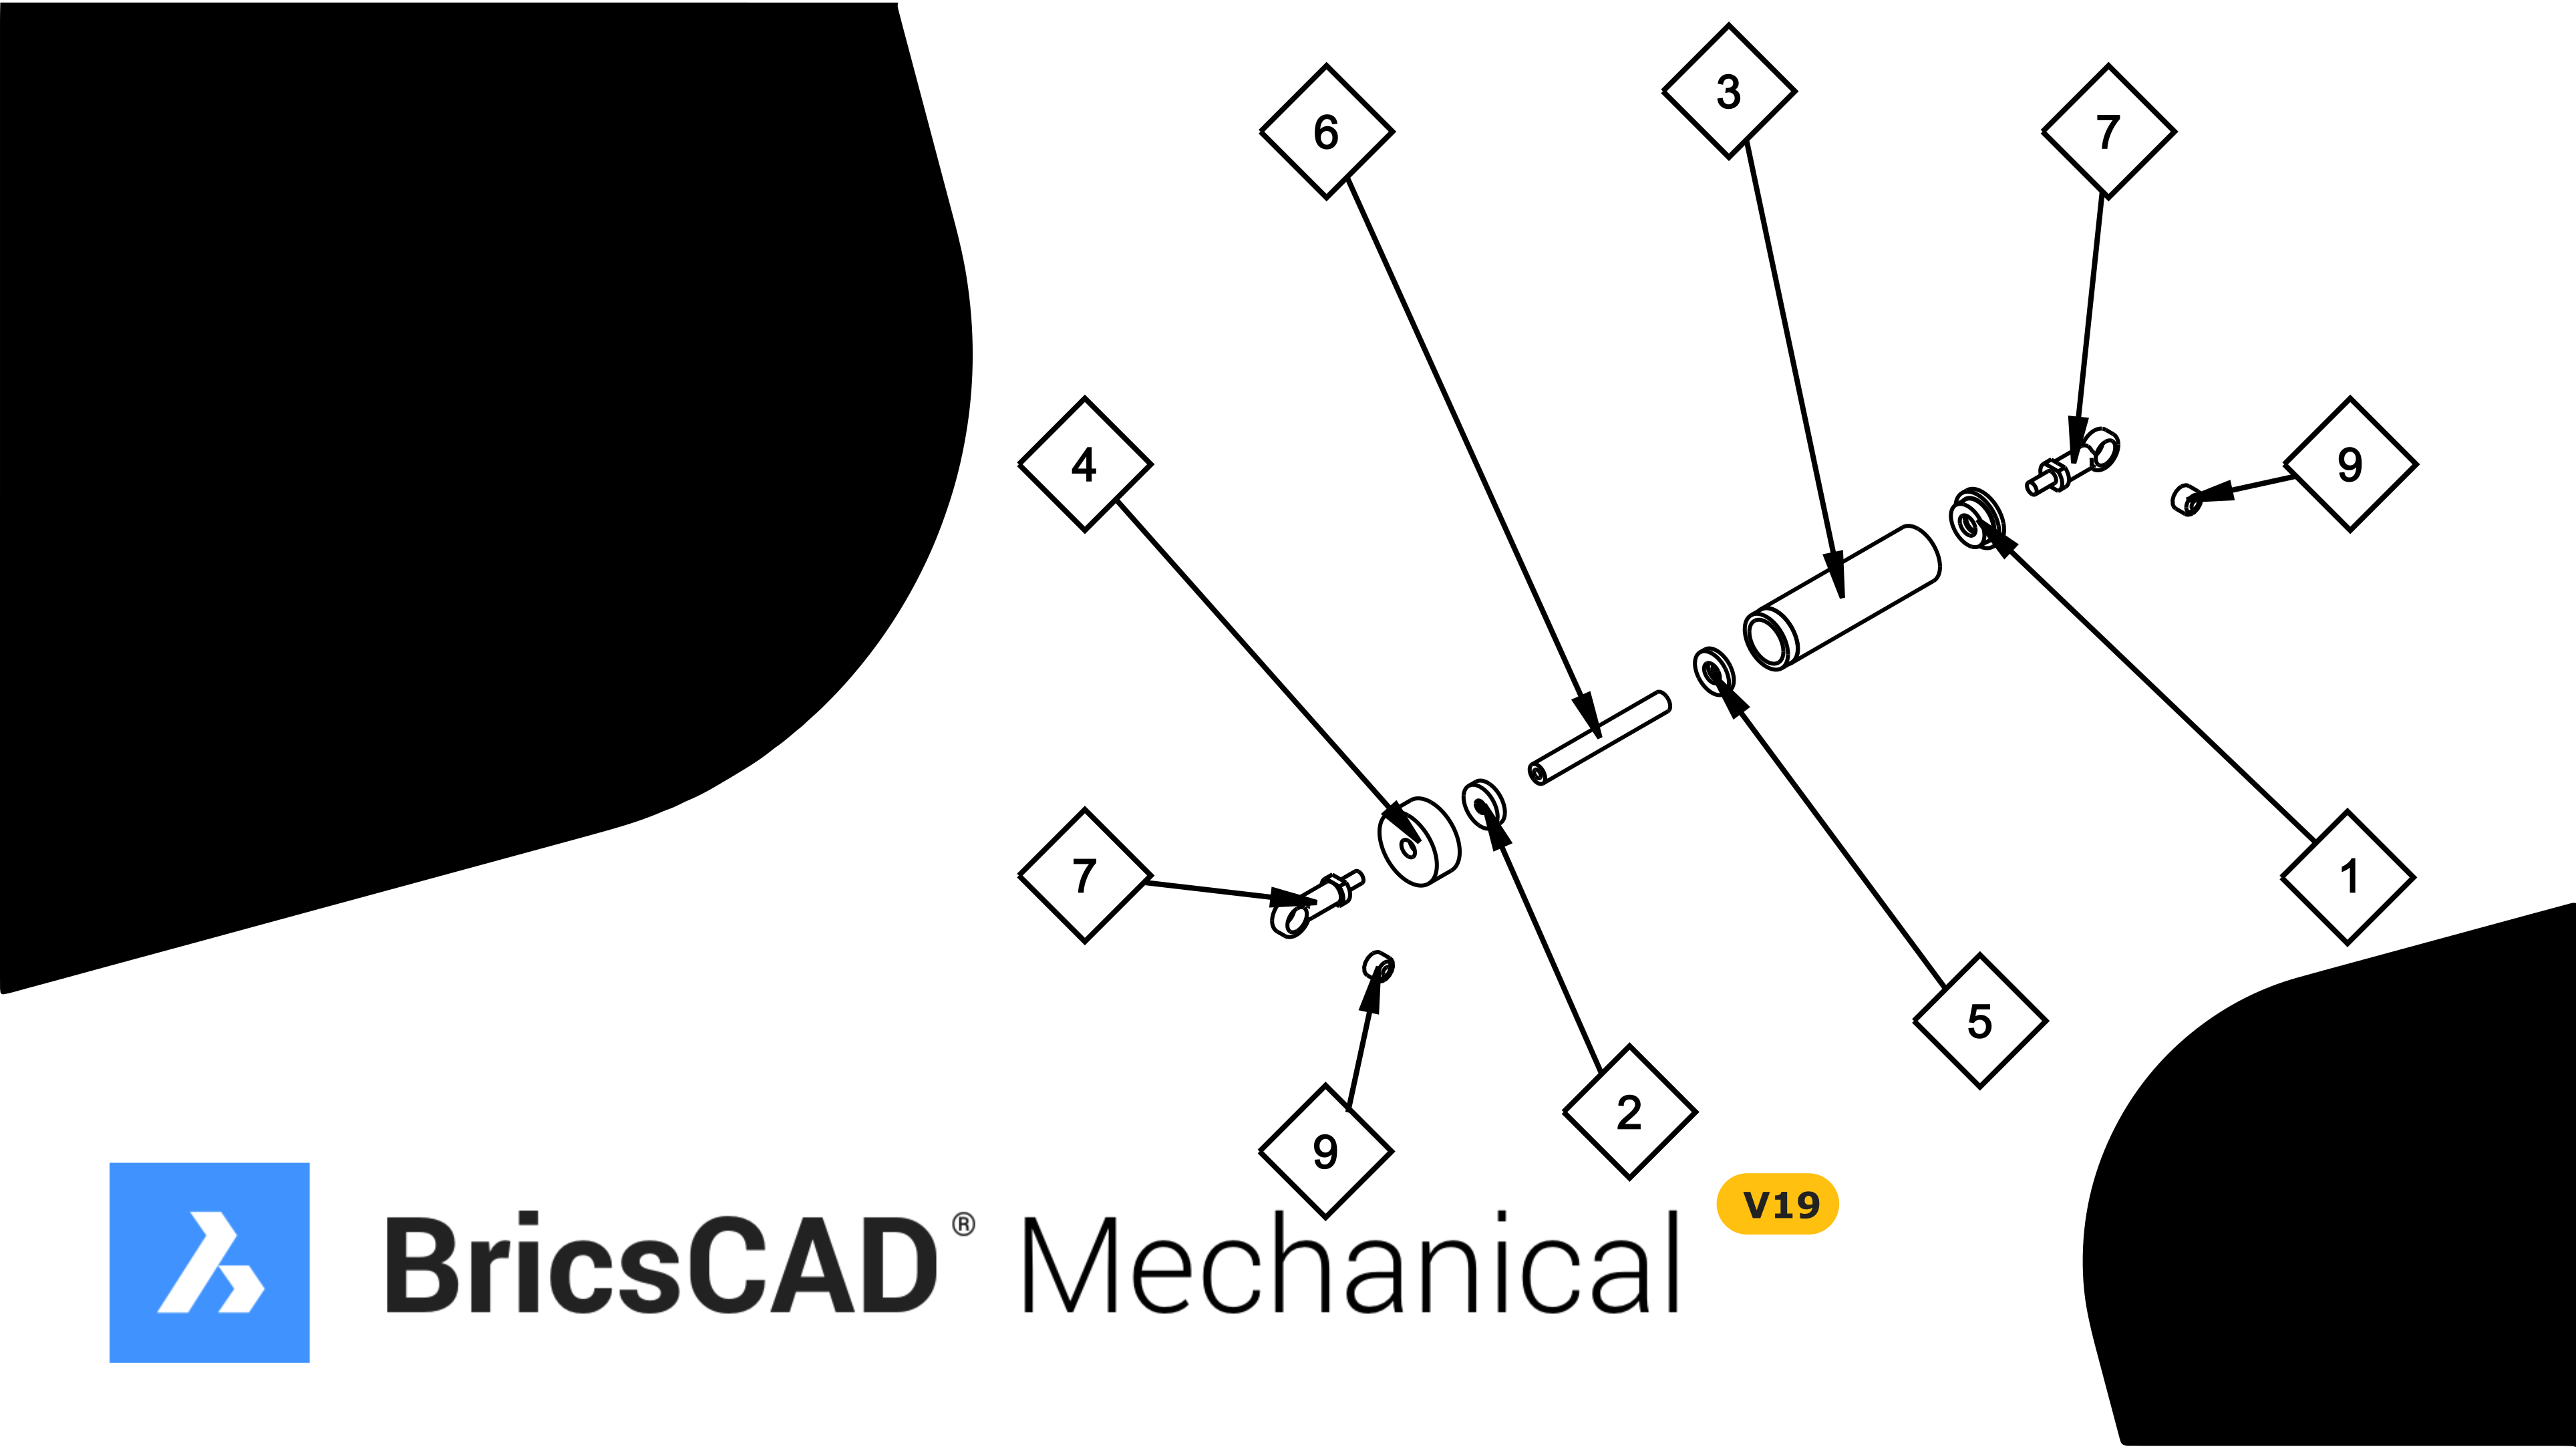 Introducing BricsCAD® Mechanical – 2D Drafting